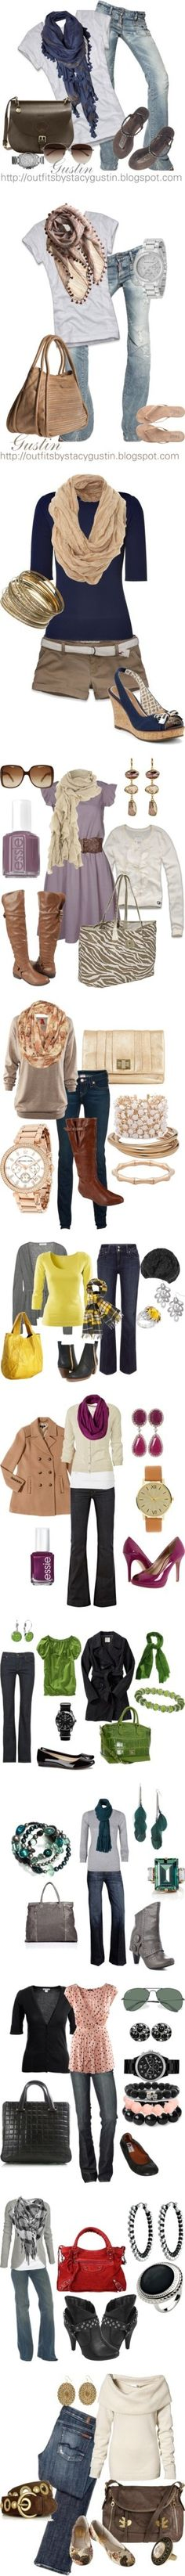 Great combinations with pops of color. Not too much, just right! Love these easy week end fashions!!